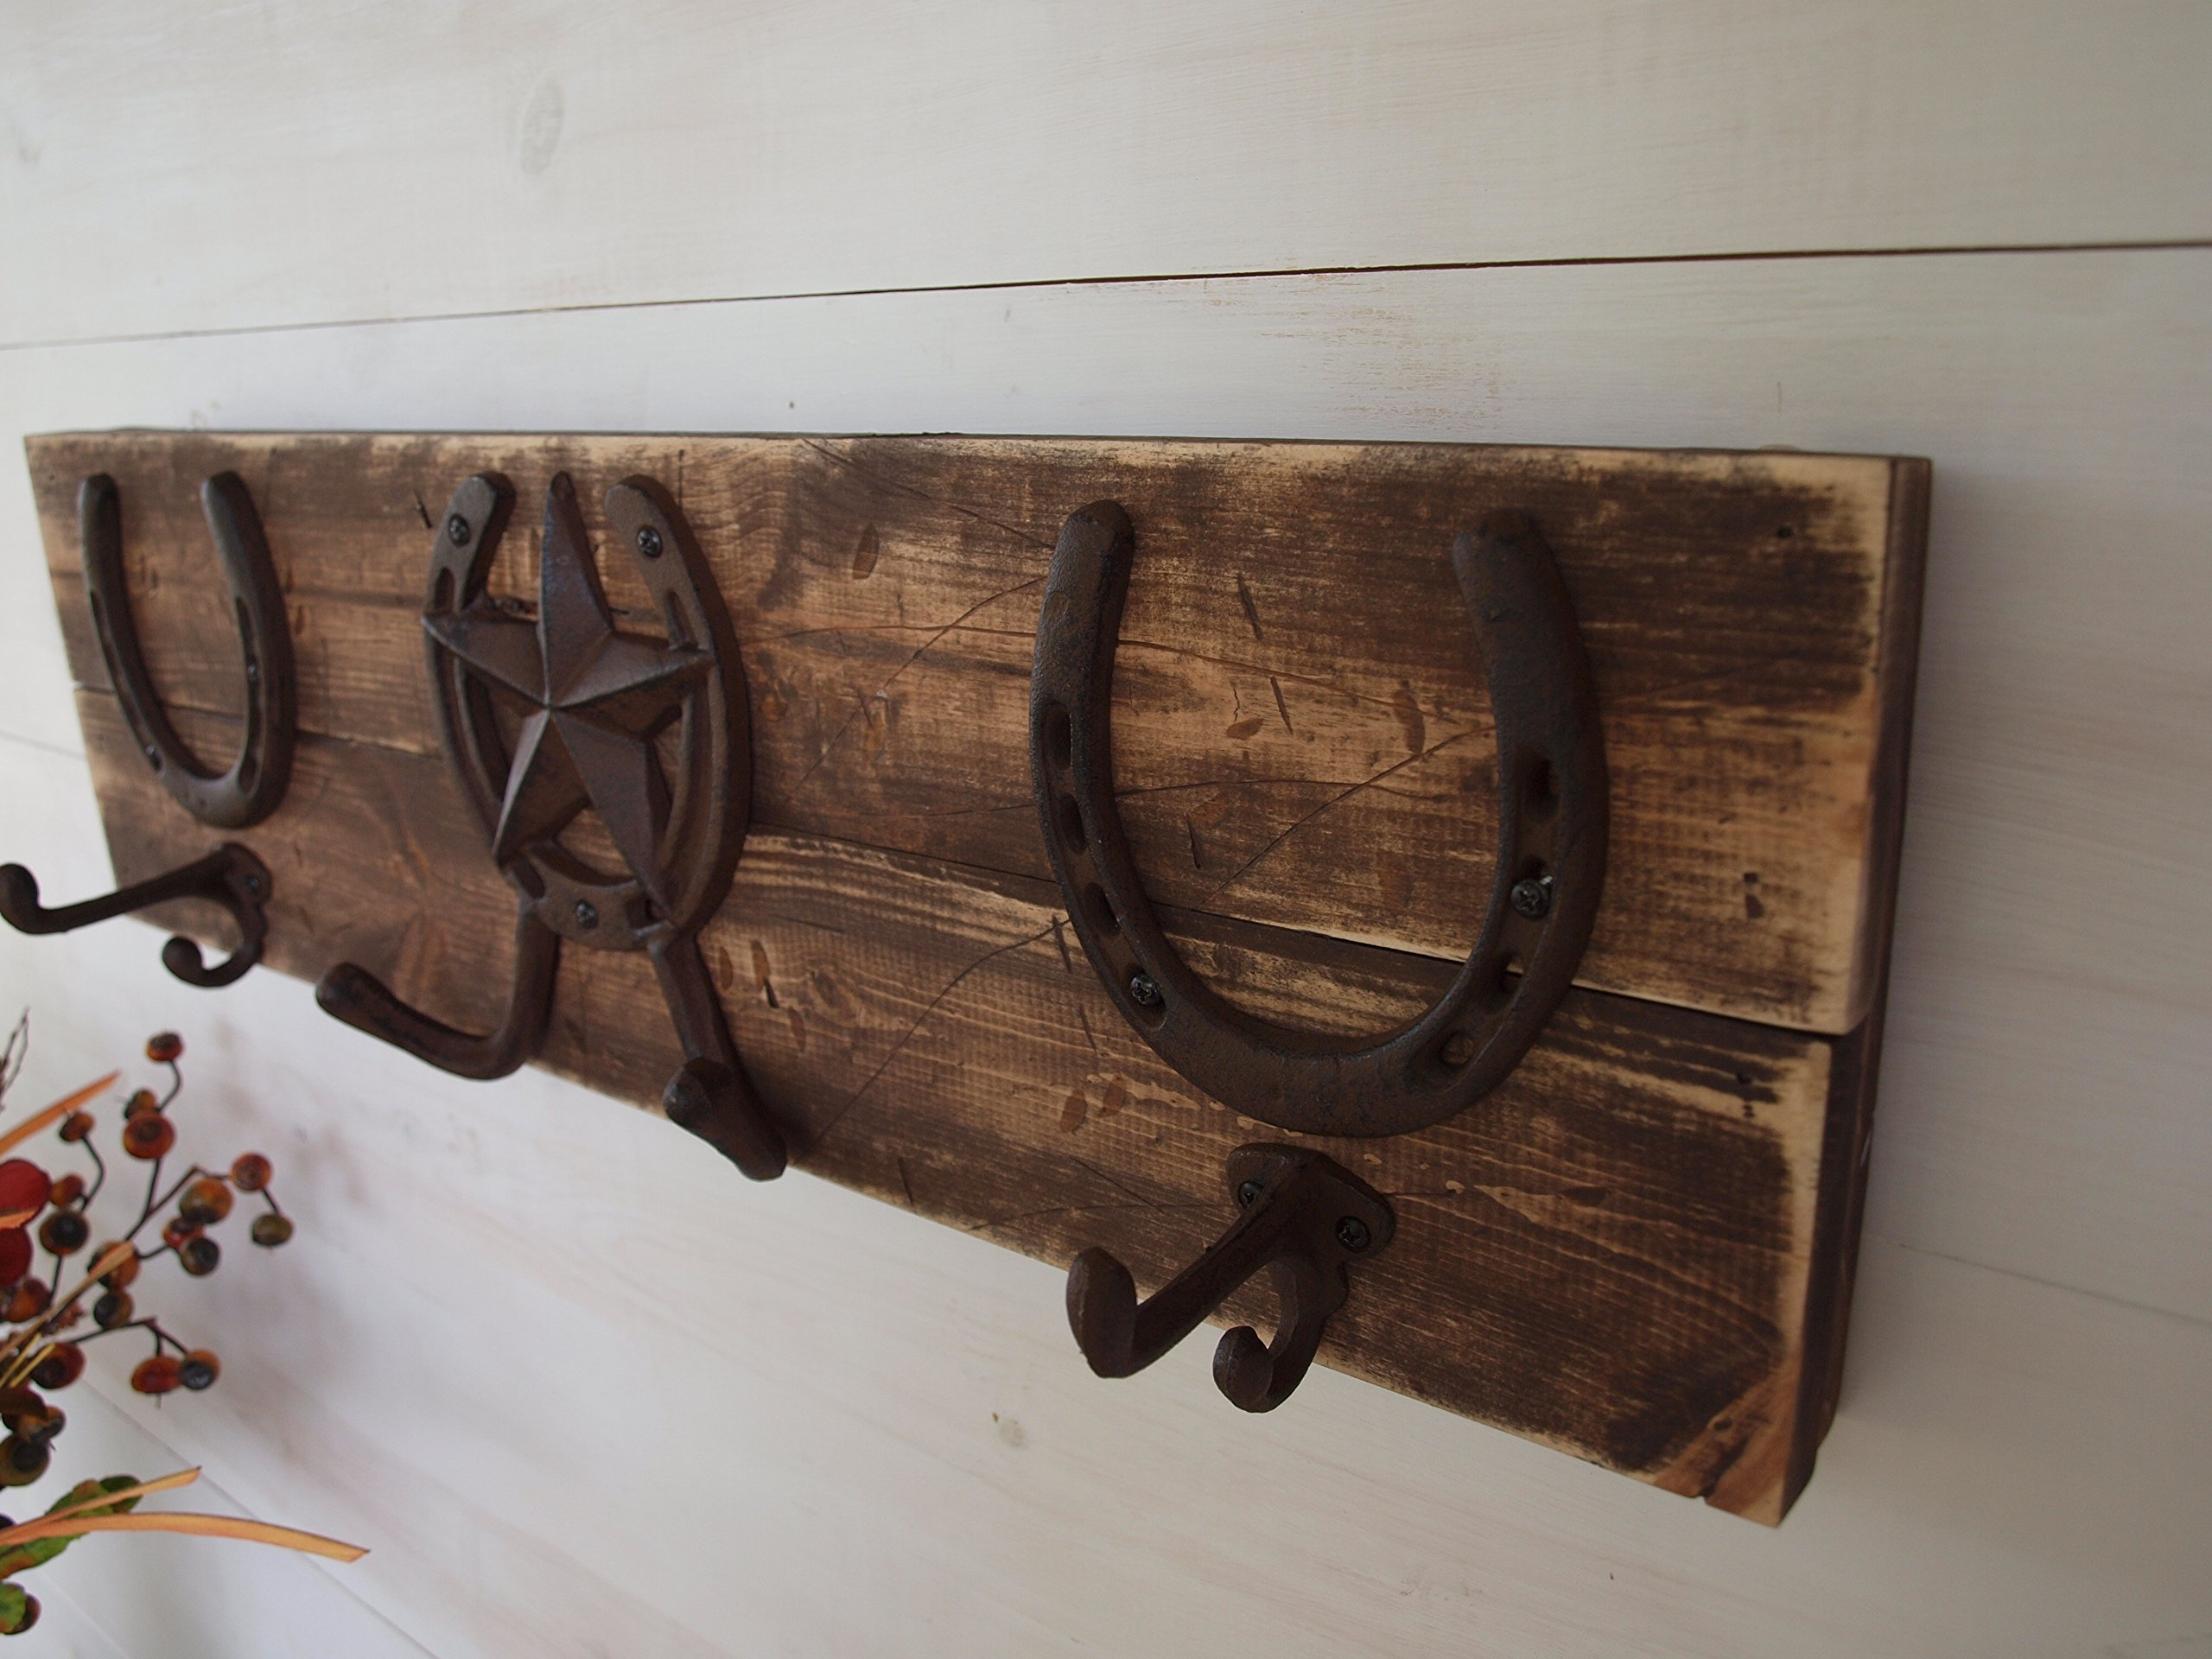 Handmade Distressed Wooden Wall Mount Coat Rack, Western Horseshoes Cast Iron Hooks Vintage